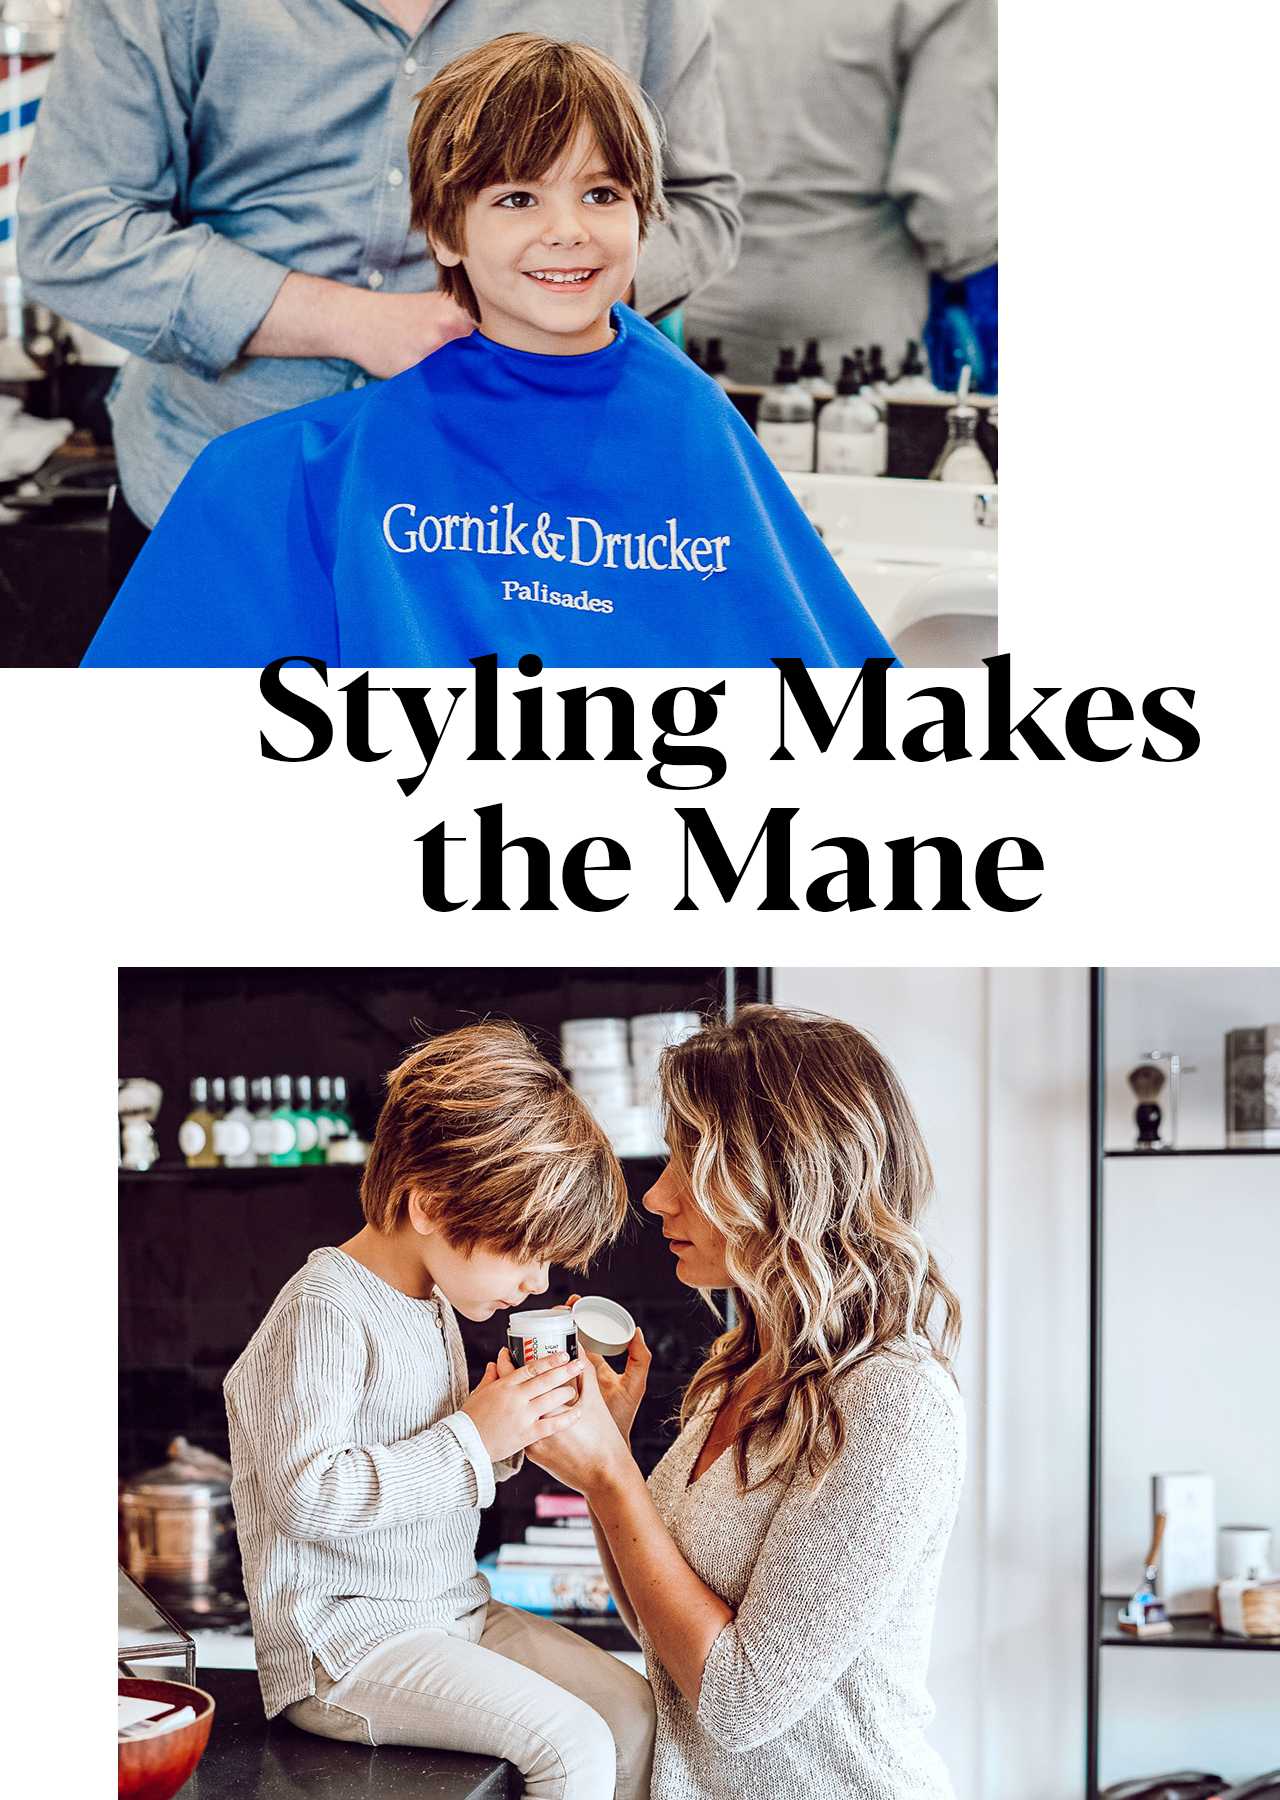 Styling Makes the Mane